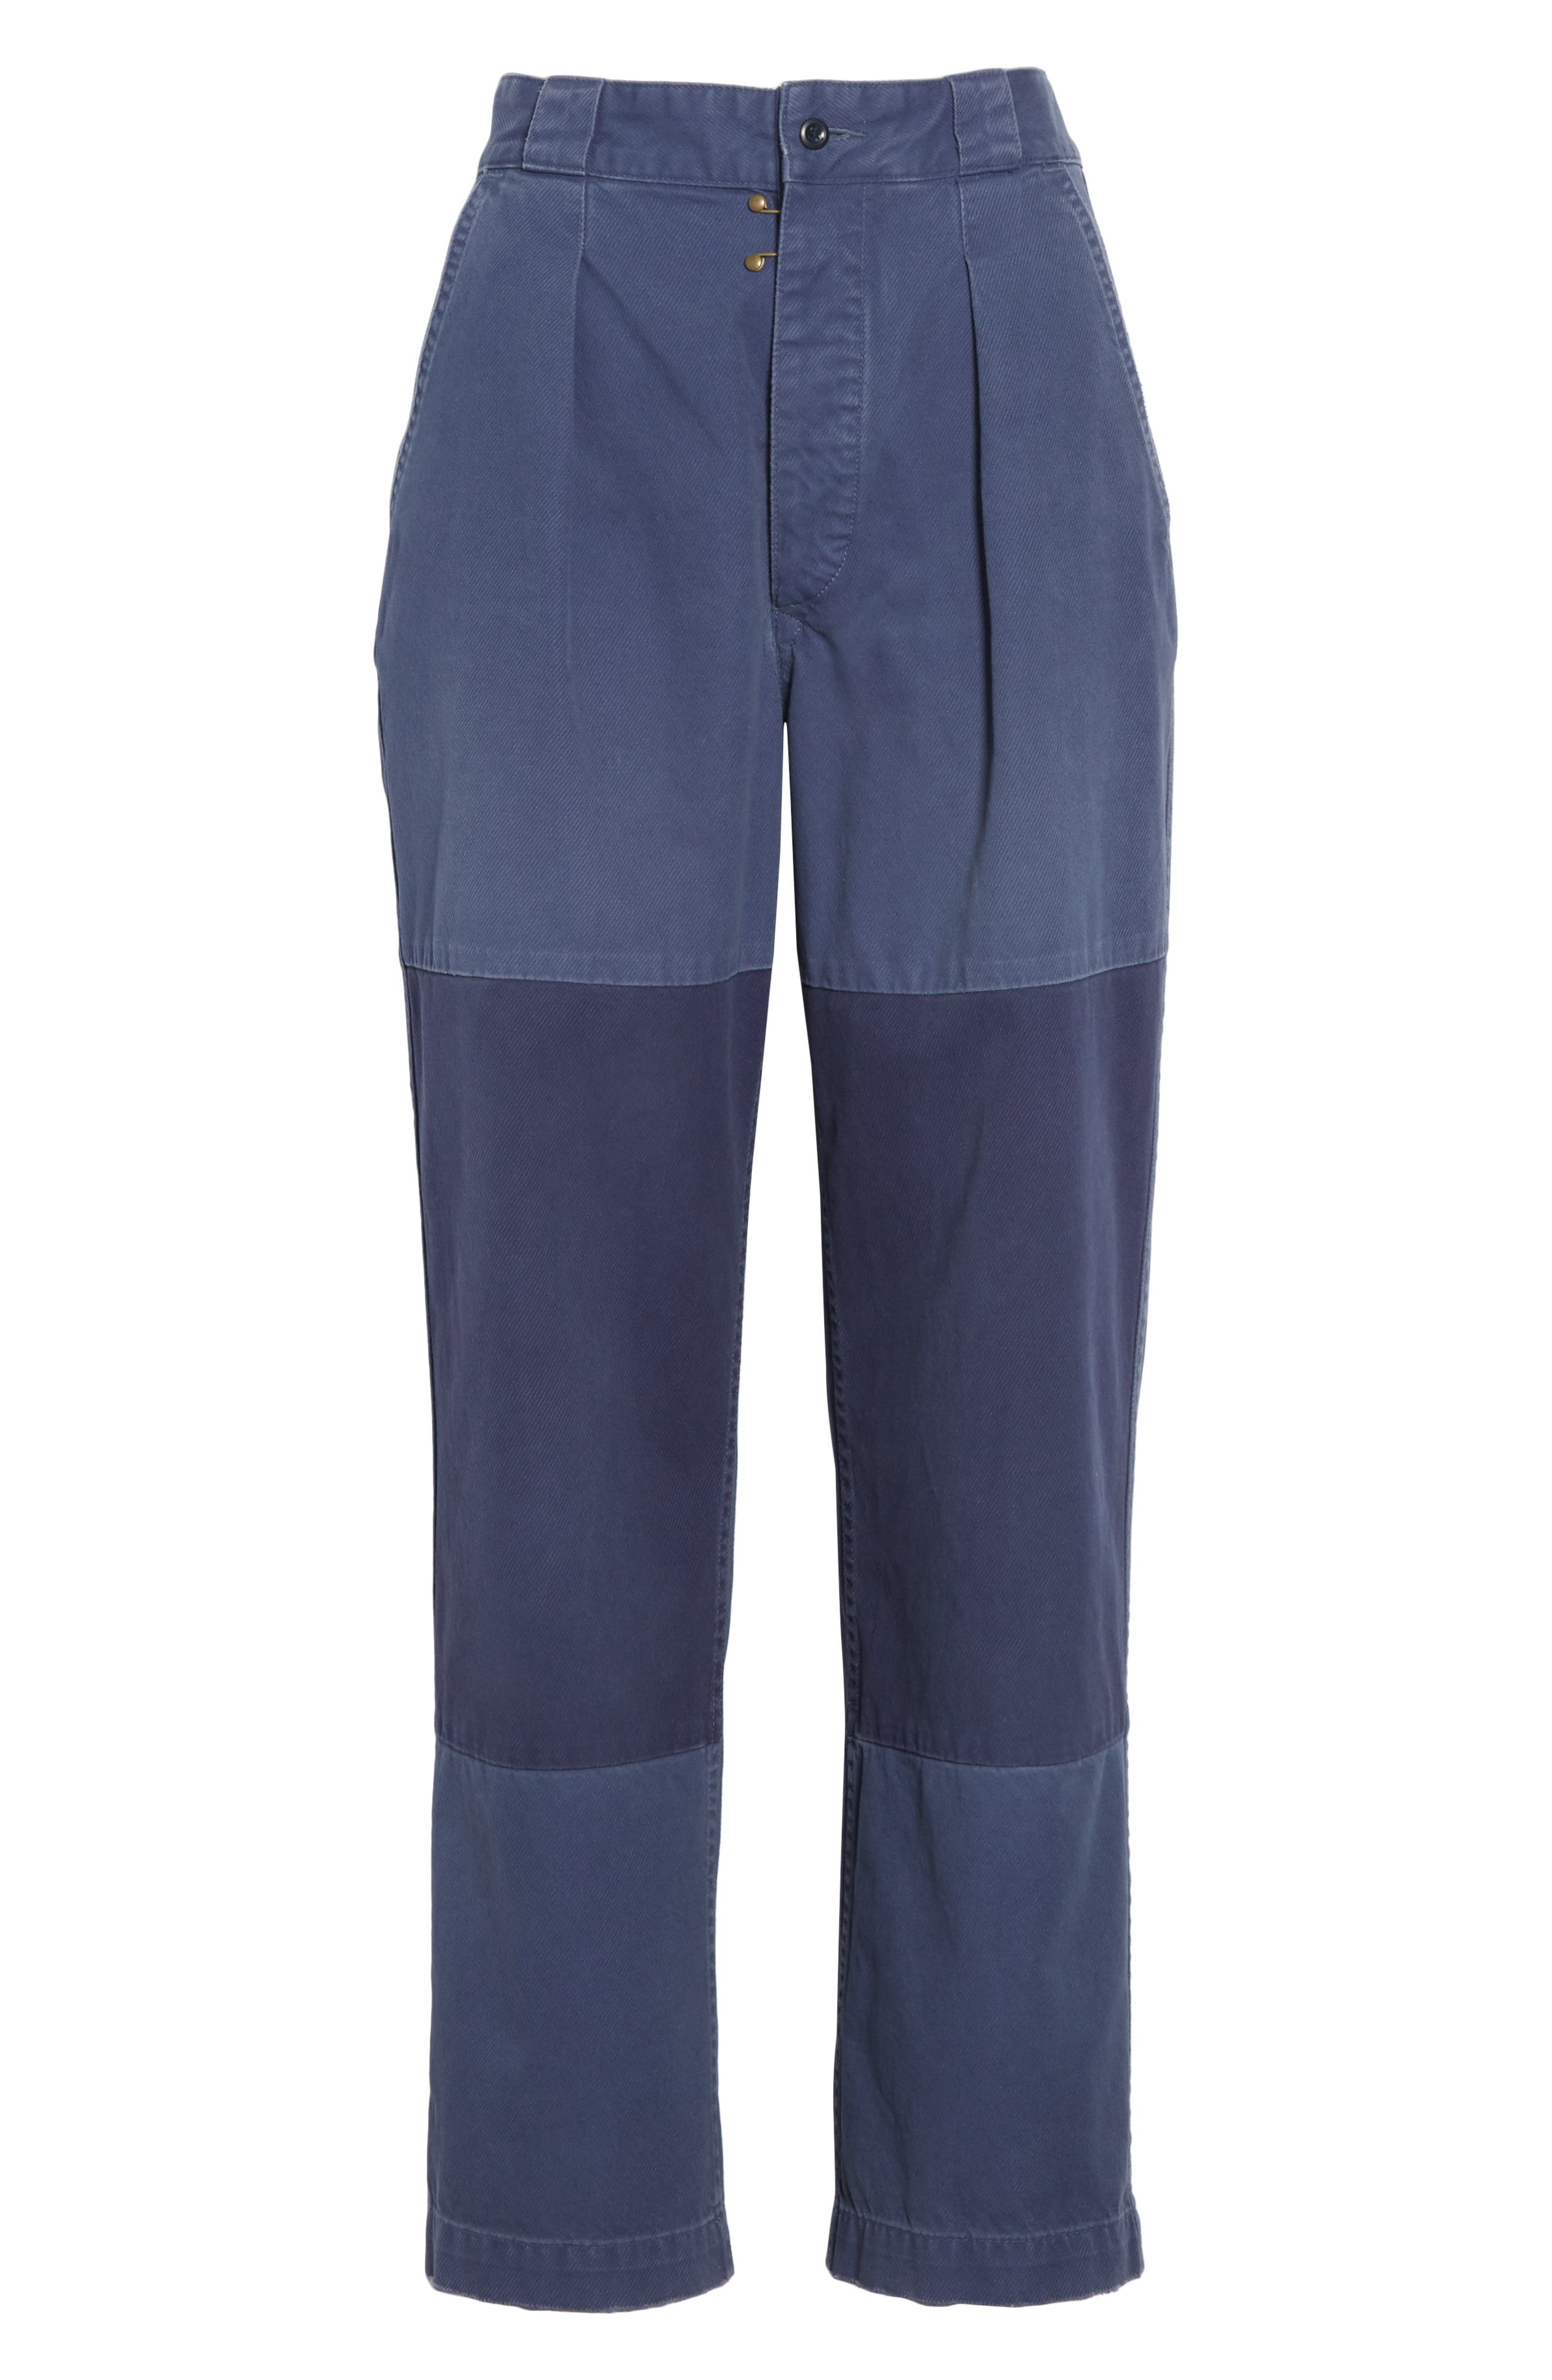 Patched Wide Leg Pants,                             Alternate thumbnail 6, color,                             NEW CLASSIC NAVY/ LIGHT NAVY